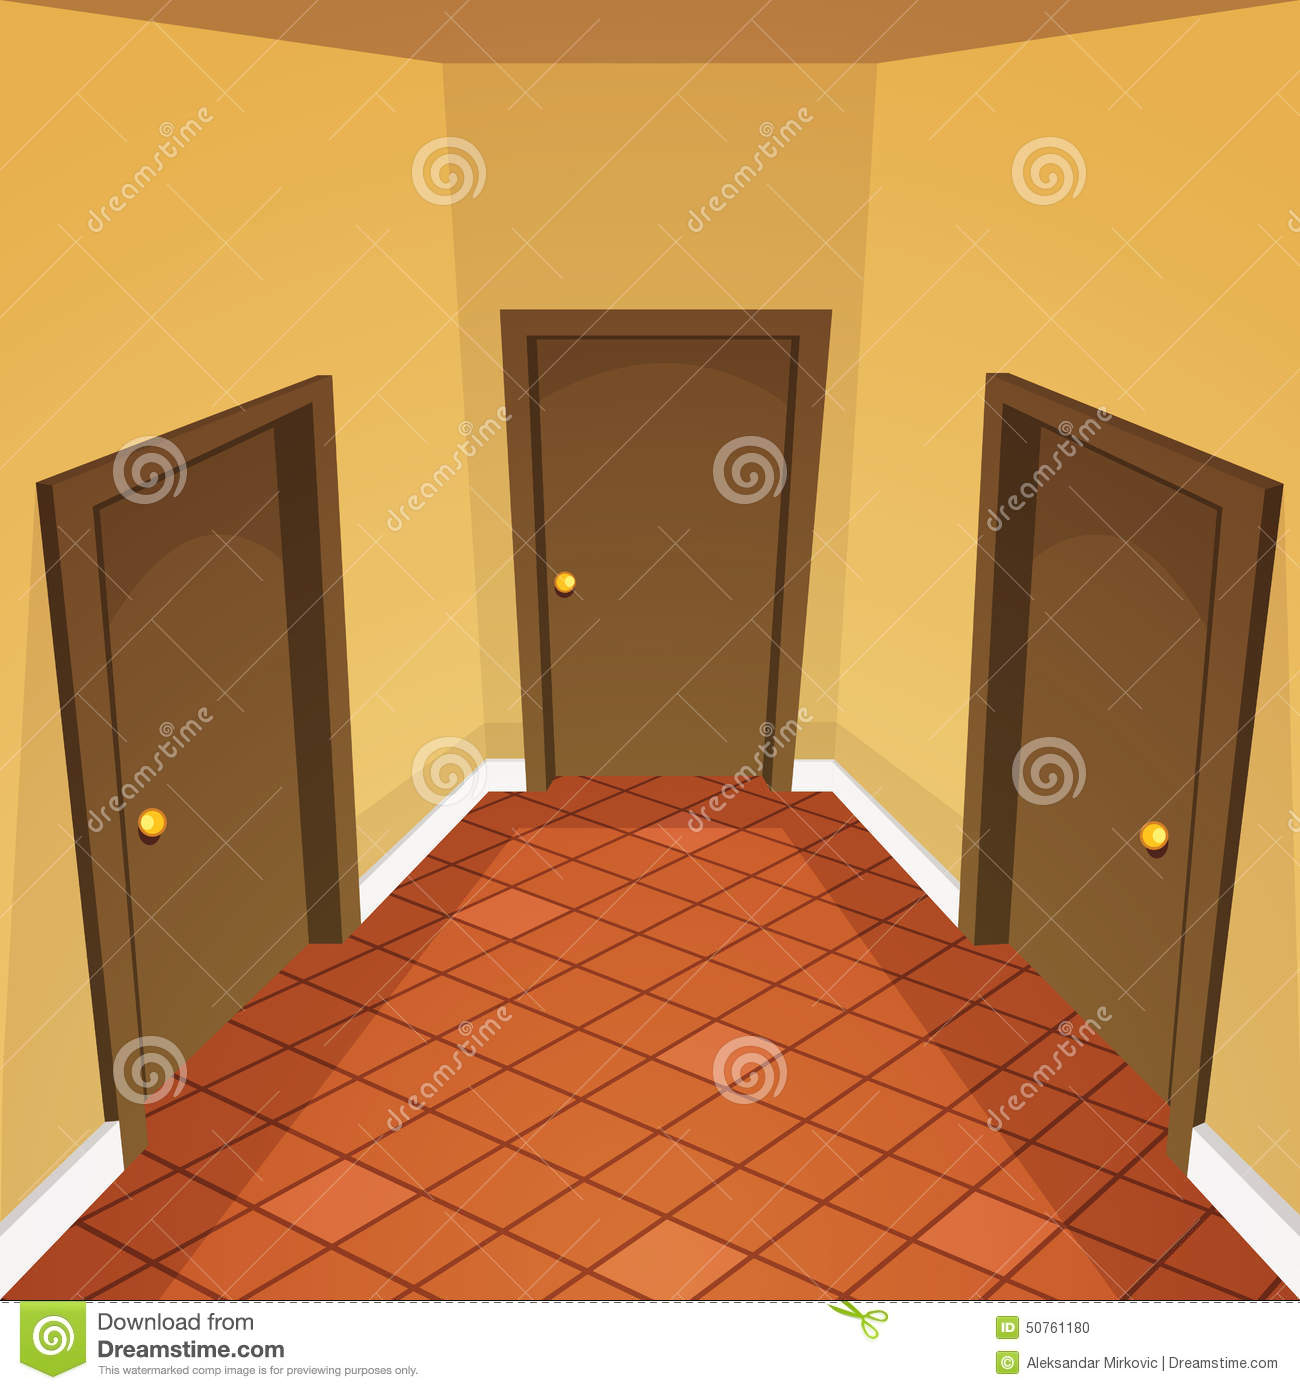 Stock Illustration House Hallway Cartoon Illustration Image50761180 as well Scandinavian Style Apartment With Birch Accents further Royalty Free Stock Photo Nice Interior Wooden Wardrobe Modern Stylish Bright Image35679625 besides Shabby Chic House In Danish as well Blog. on empty house interior design